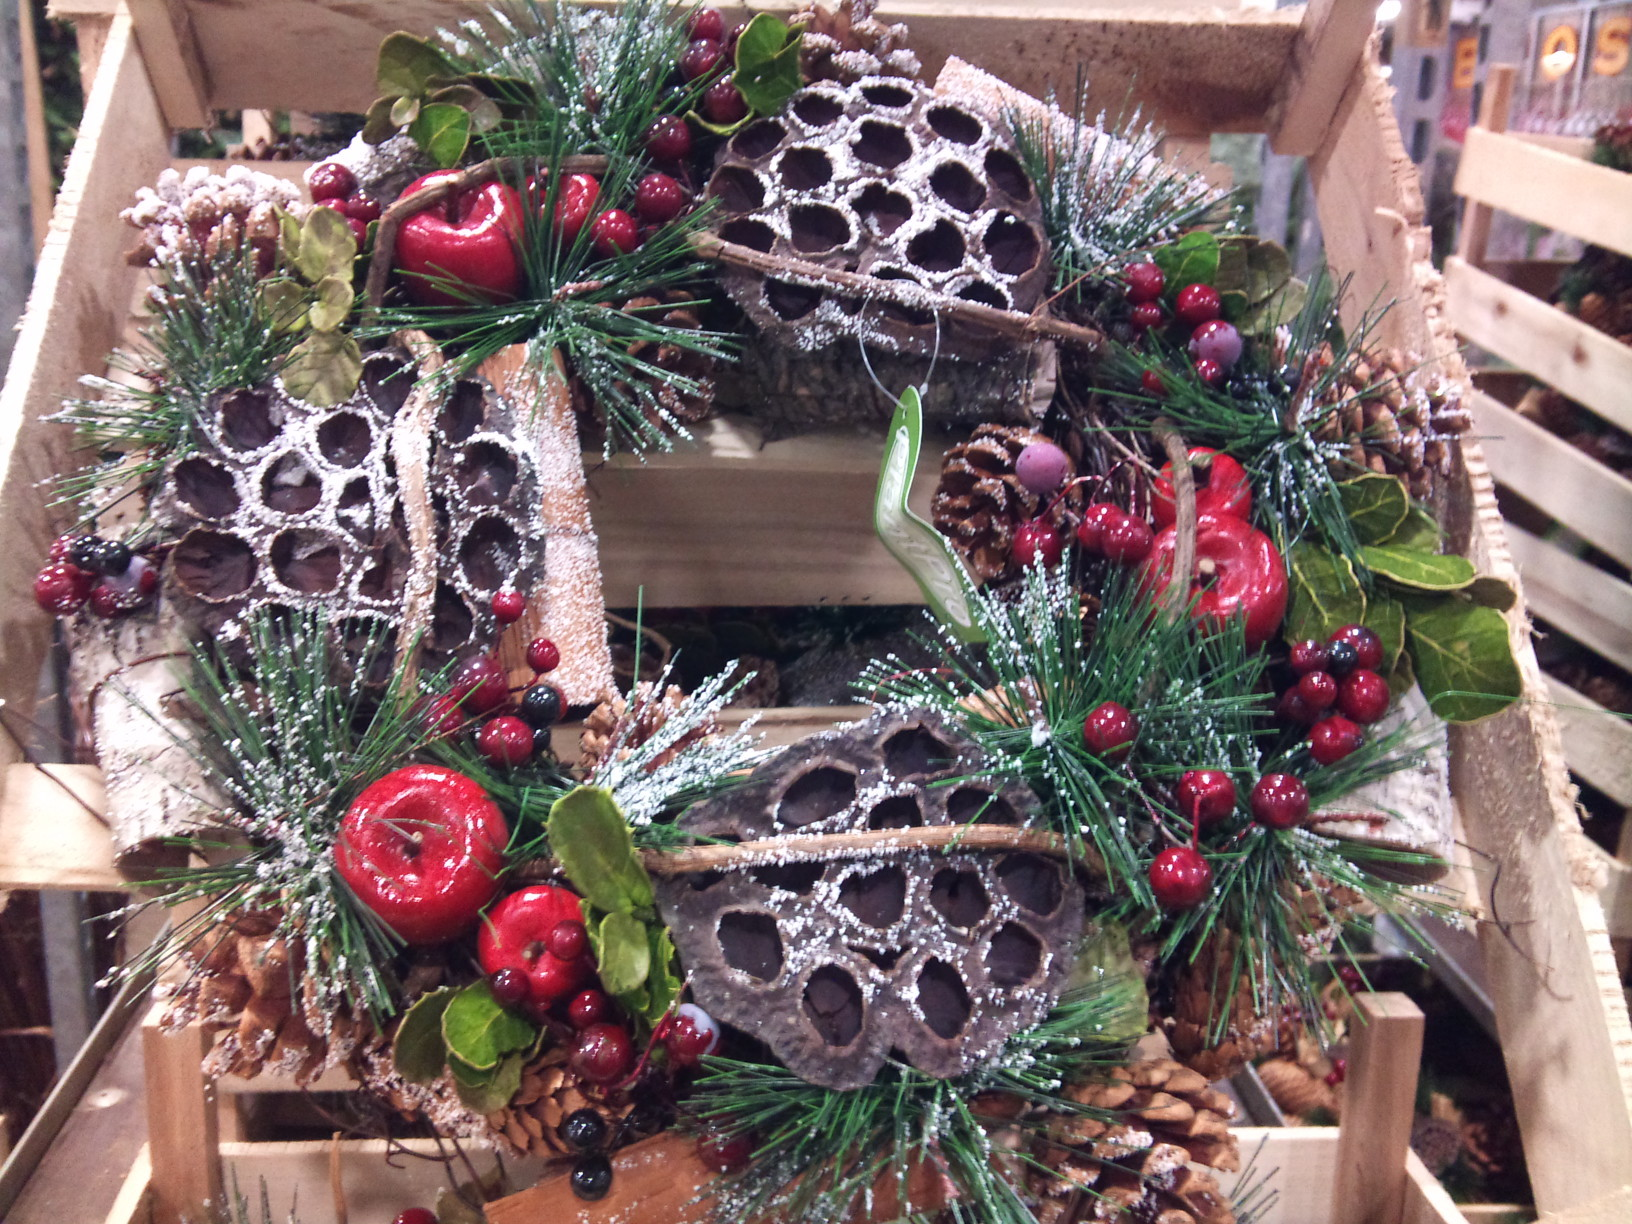 2012-12-Bloomfield-wreath-1.jpg?mtime=20171003154040#asset:12620